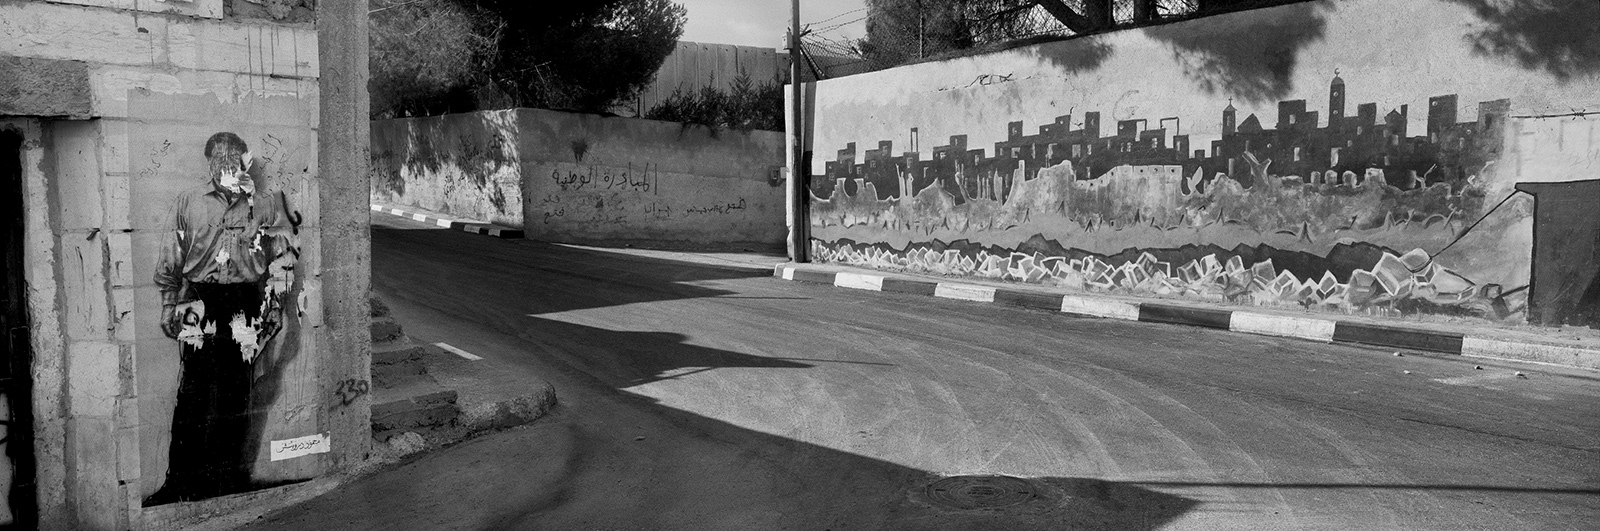 A poster of the Palestinian poet Mahmoud Darwish (left), Aida refugee camp, near Bethlehem, West Bank, 2009; photograph by Josef Koudelka from 'This Place,' an exhibition of pictures by twelve photographers of Israel and the West Bank, at the Brooklyn Museum of Art until June 5, 2016